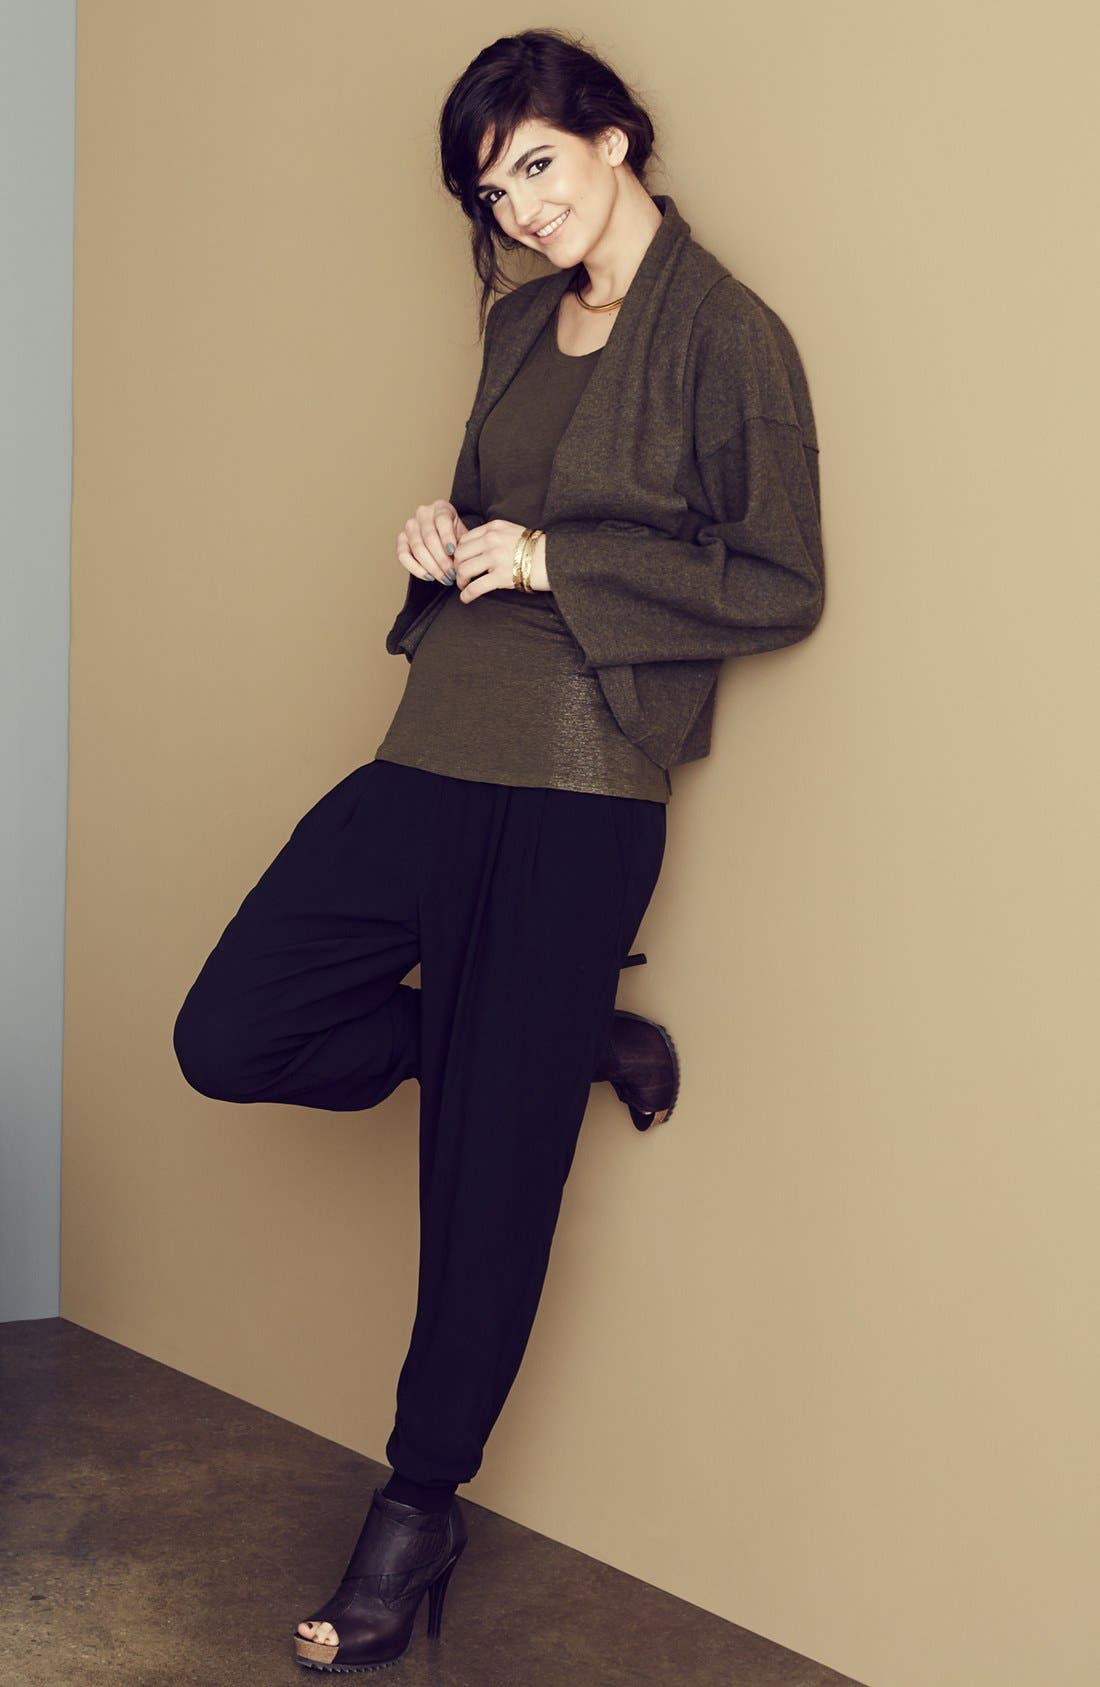 Alternate Image 1 Selected - Eileen Fisher Jacket & Accessories